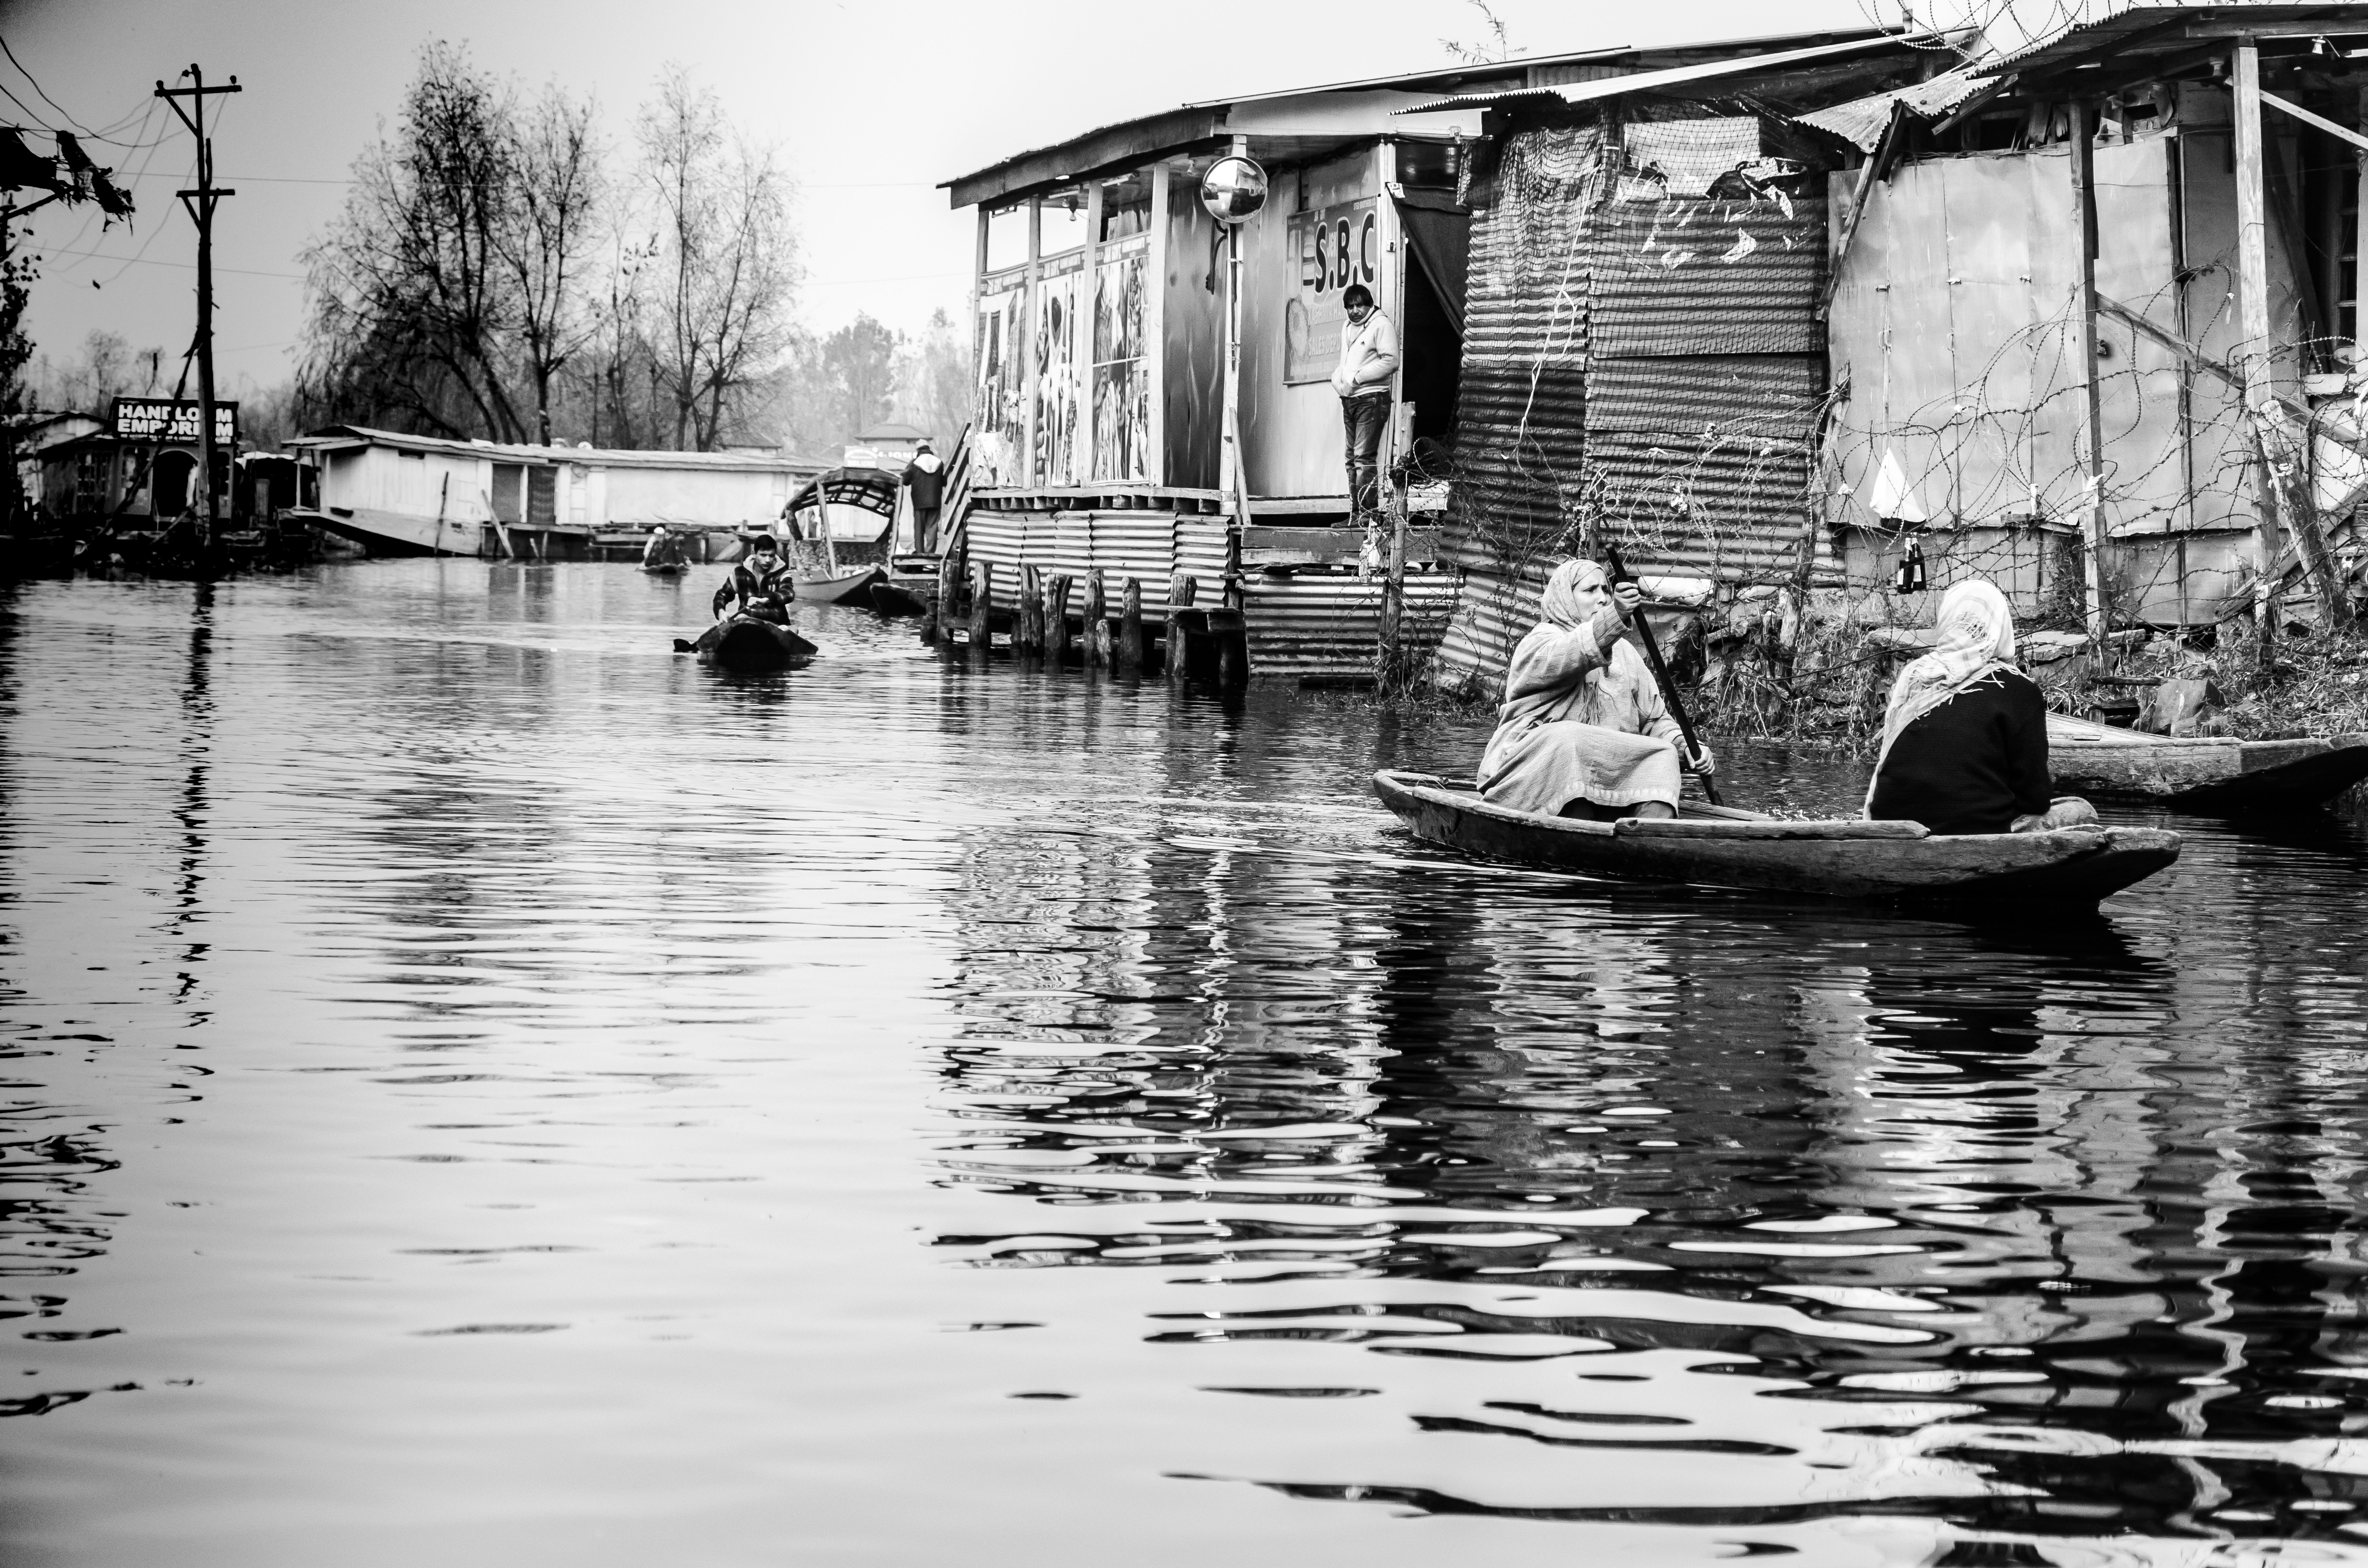 Daily Life in Kashmir